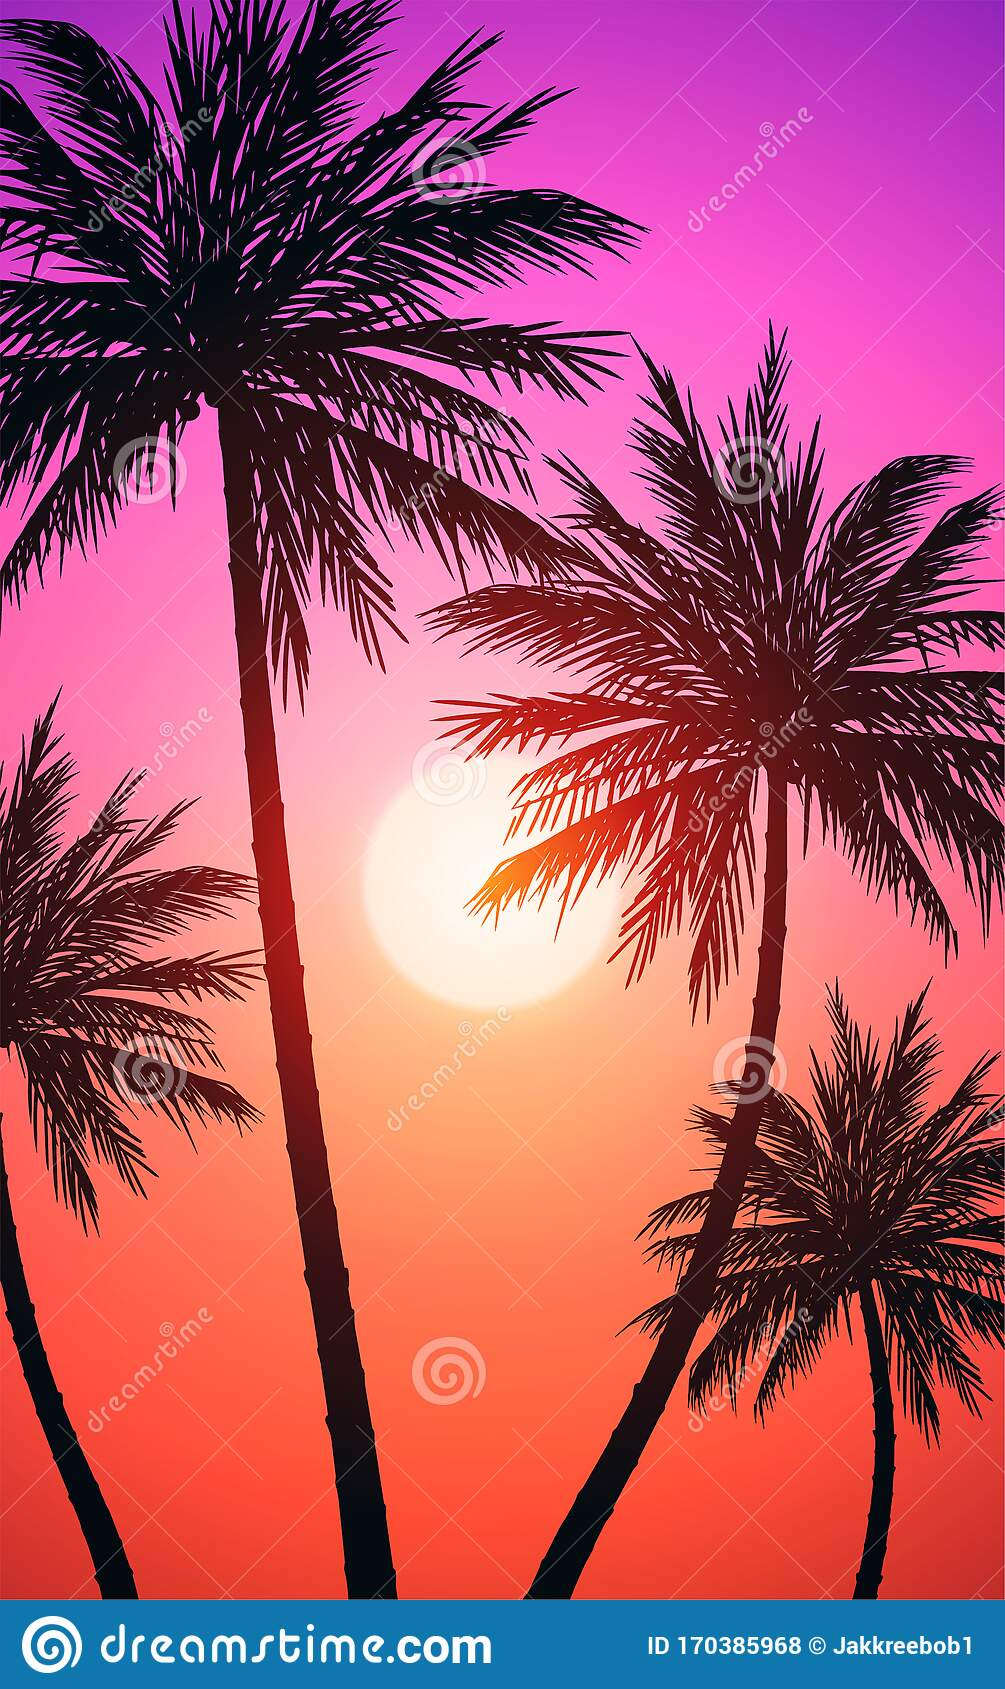 Natural Coconut Trees Silhouettes Of Trees Evening Sunrise And Sunset Landscape Wallpaper Illustration Vector Stock Vector Illustration Of Mountains Hill 170385968